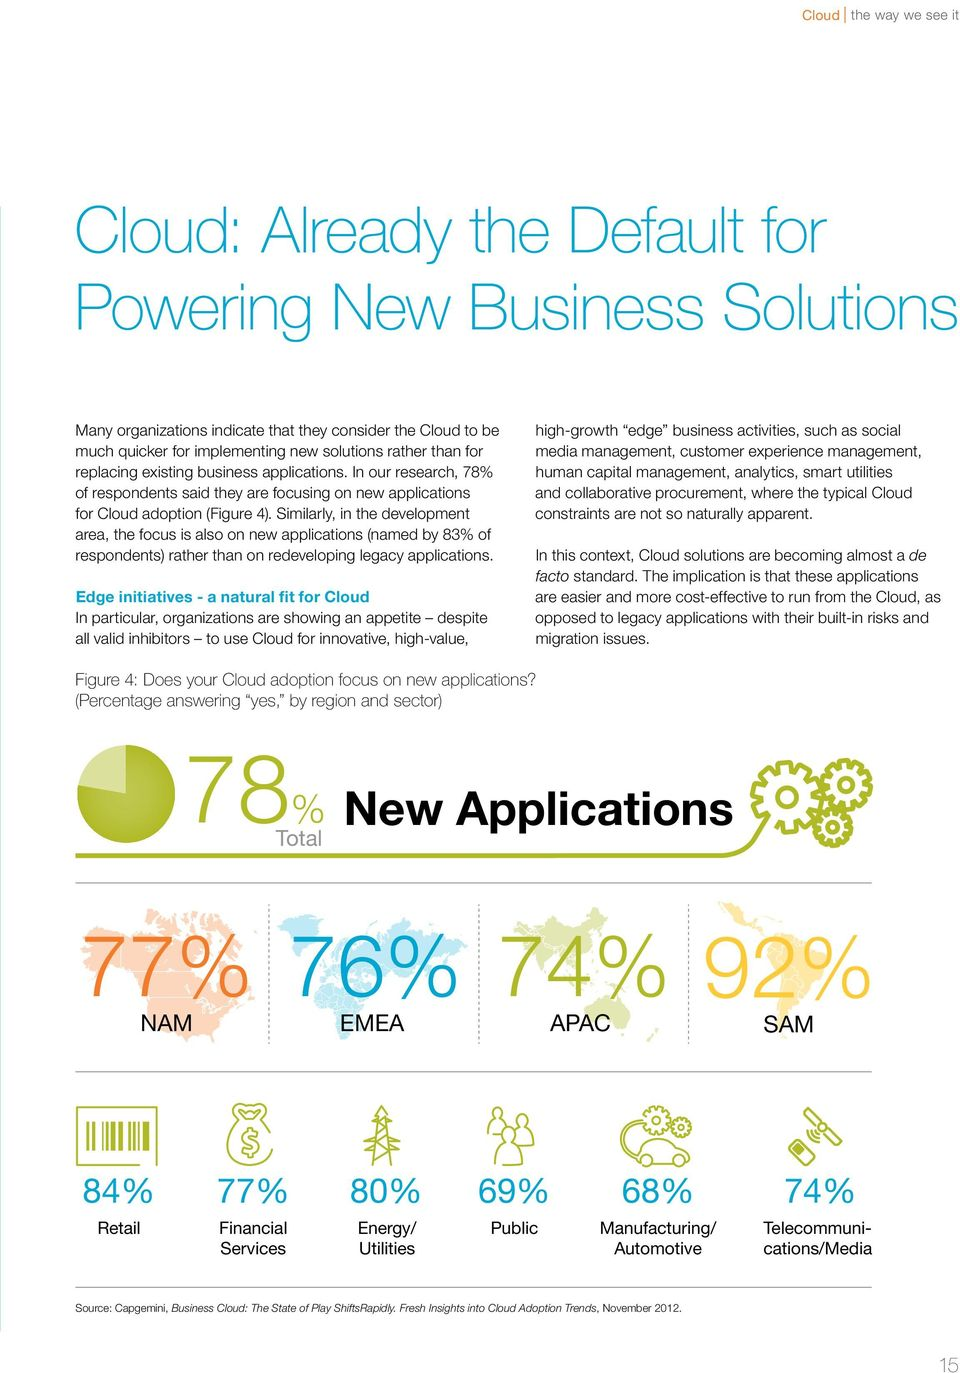 Similarly, in the development area, the focus is also on new applications (named by 83% of respondents) rather than on redeveloping legacy applications.